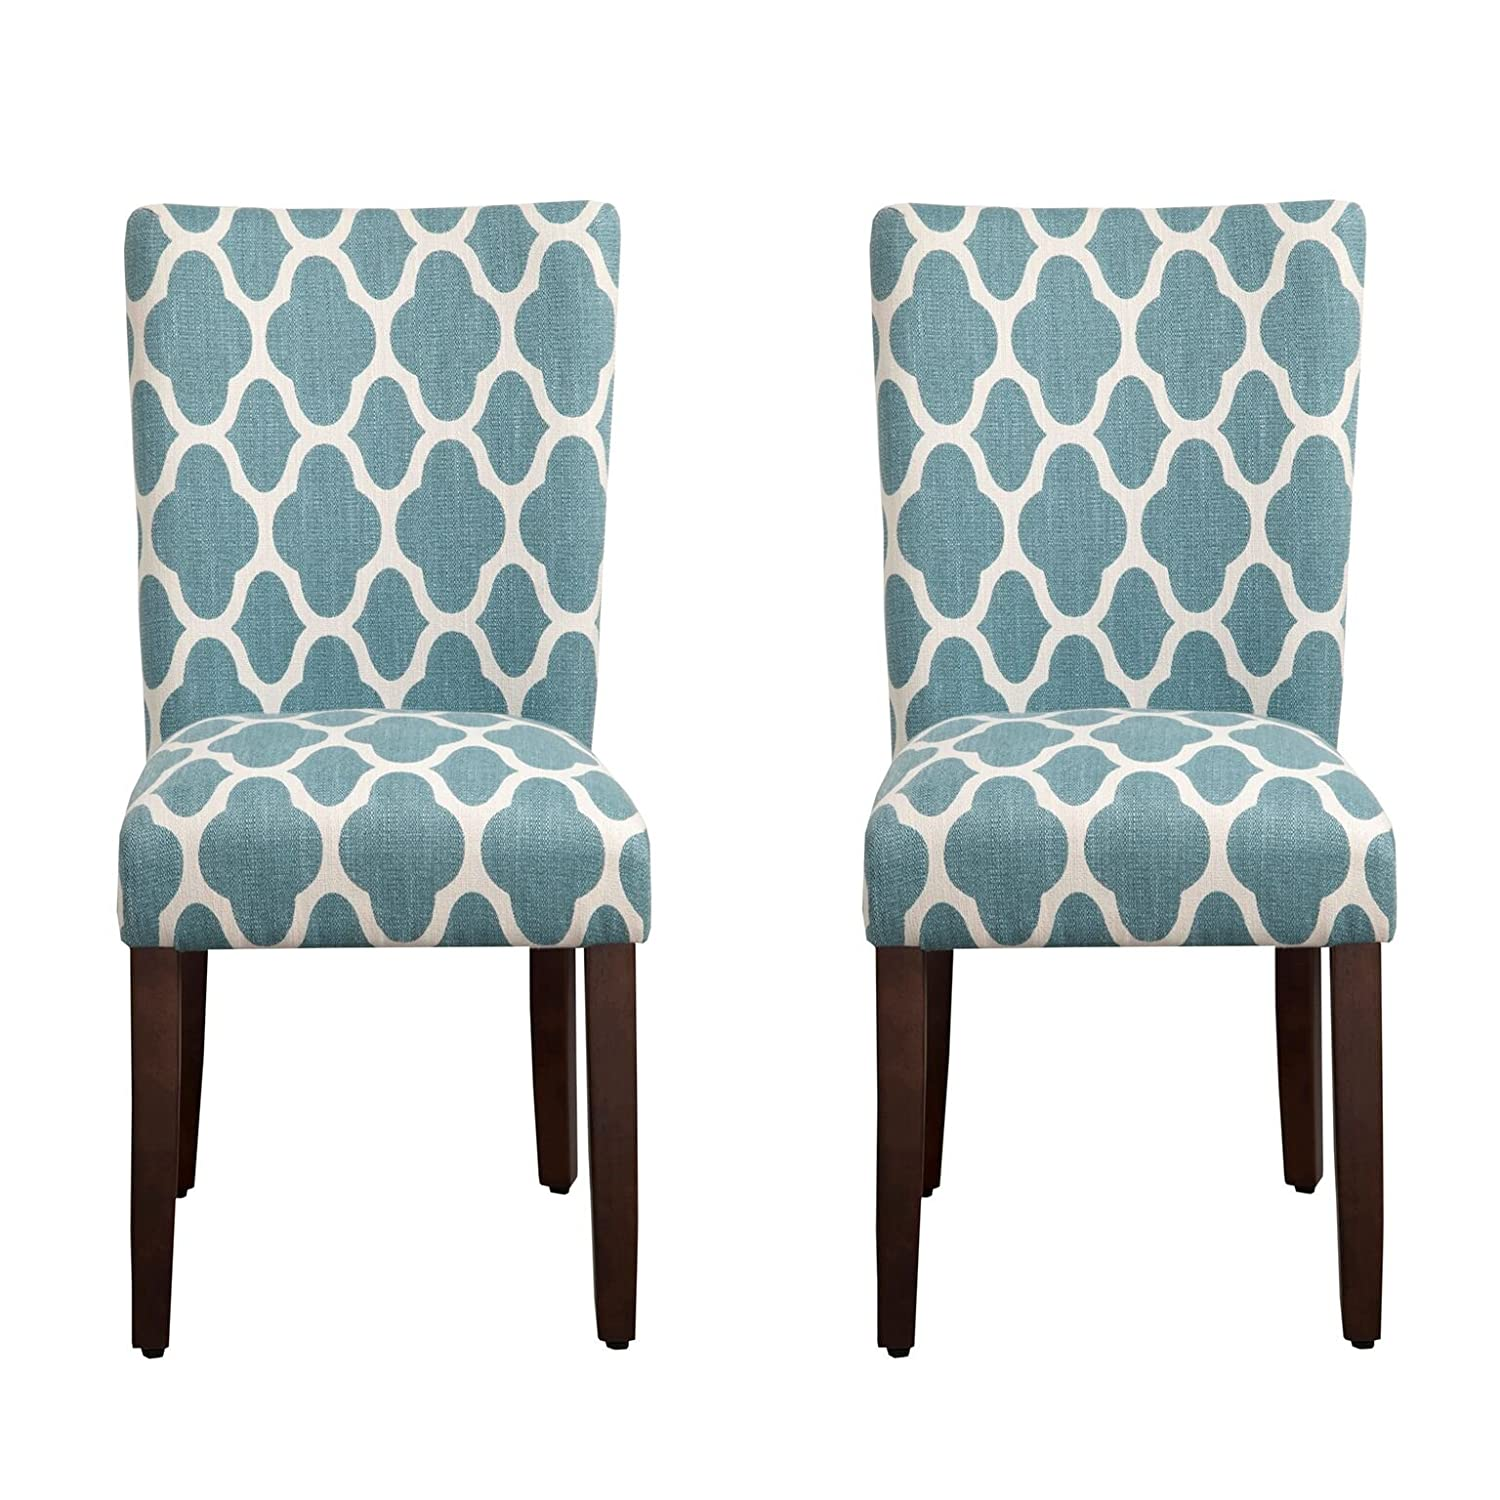 Kinfine Parsons Upholstered Accent Dining Chair, Set of 2, Teal and Cream Geometric